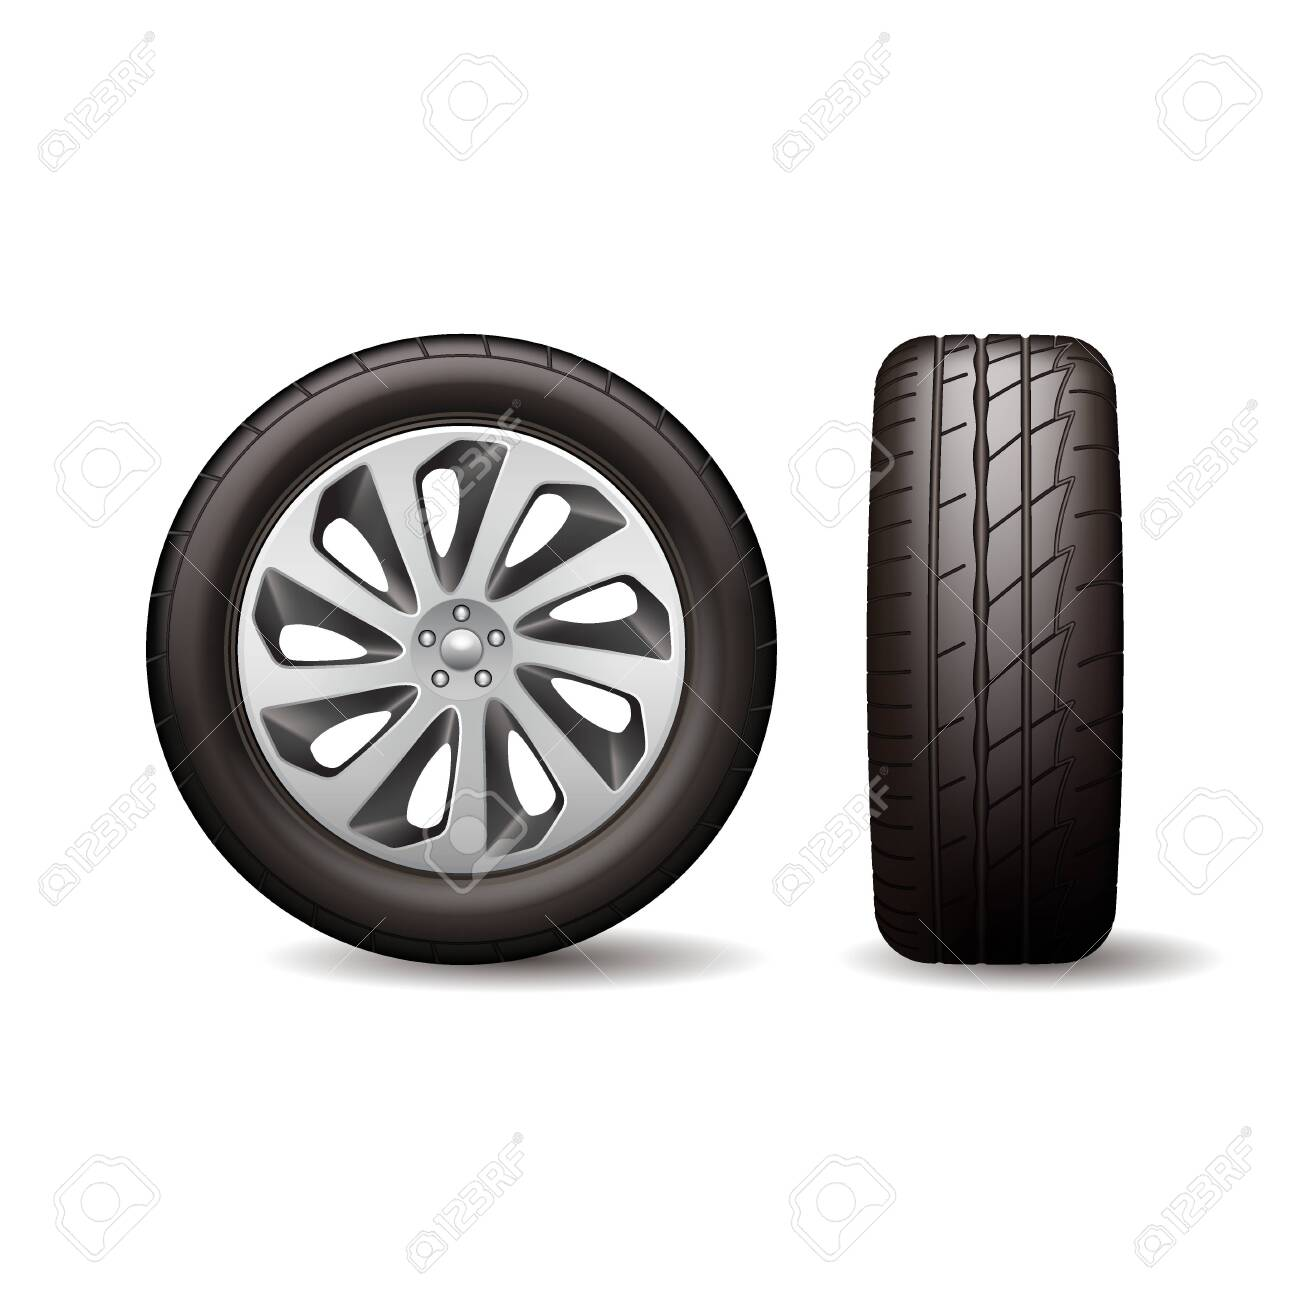 Realistic shining disk car wheel tyre isolated on white background vector illustration - 152331705